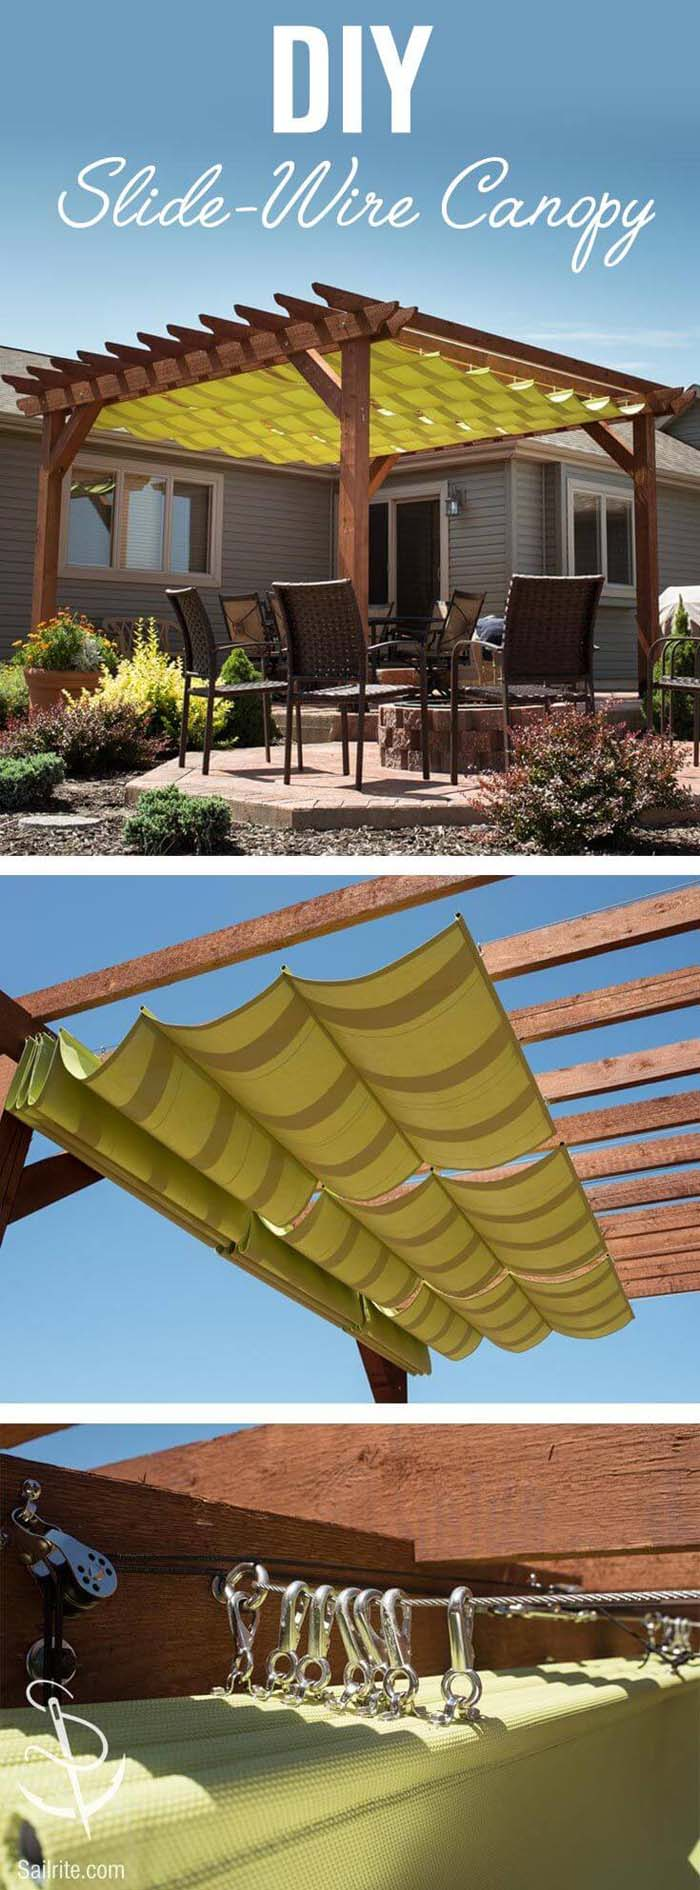 Tuscan Shelter Slide-Wire Canopy #diy #project #backyard #garden #decorhomeideas